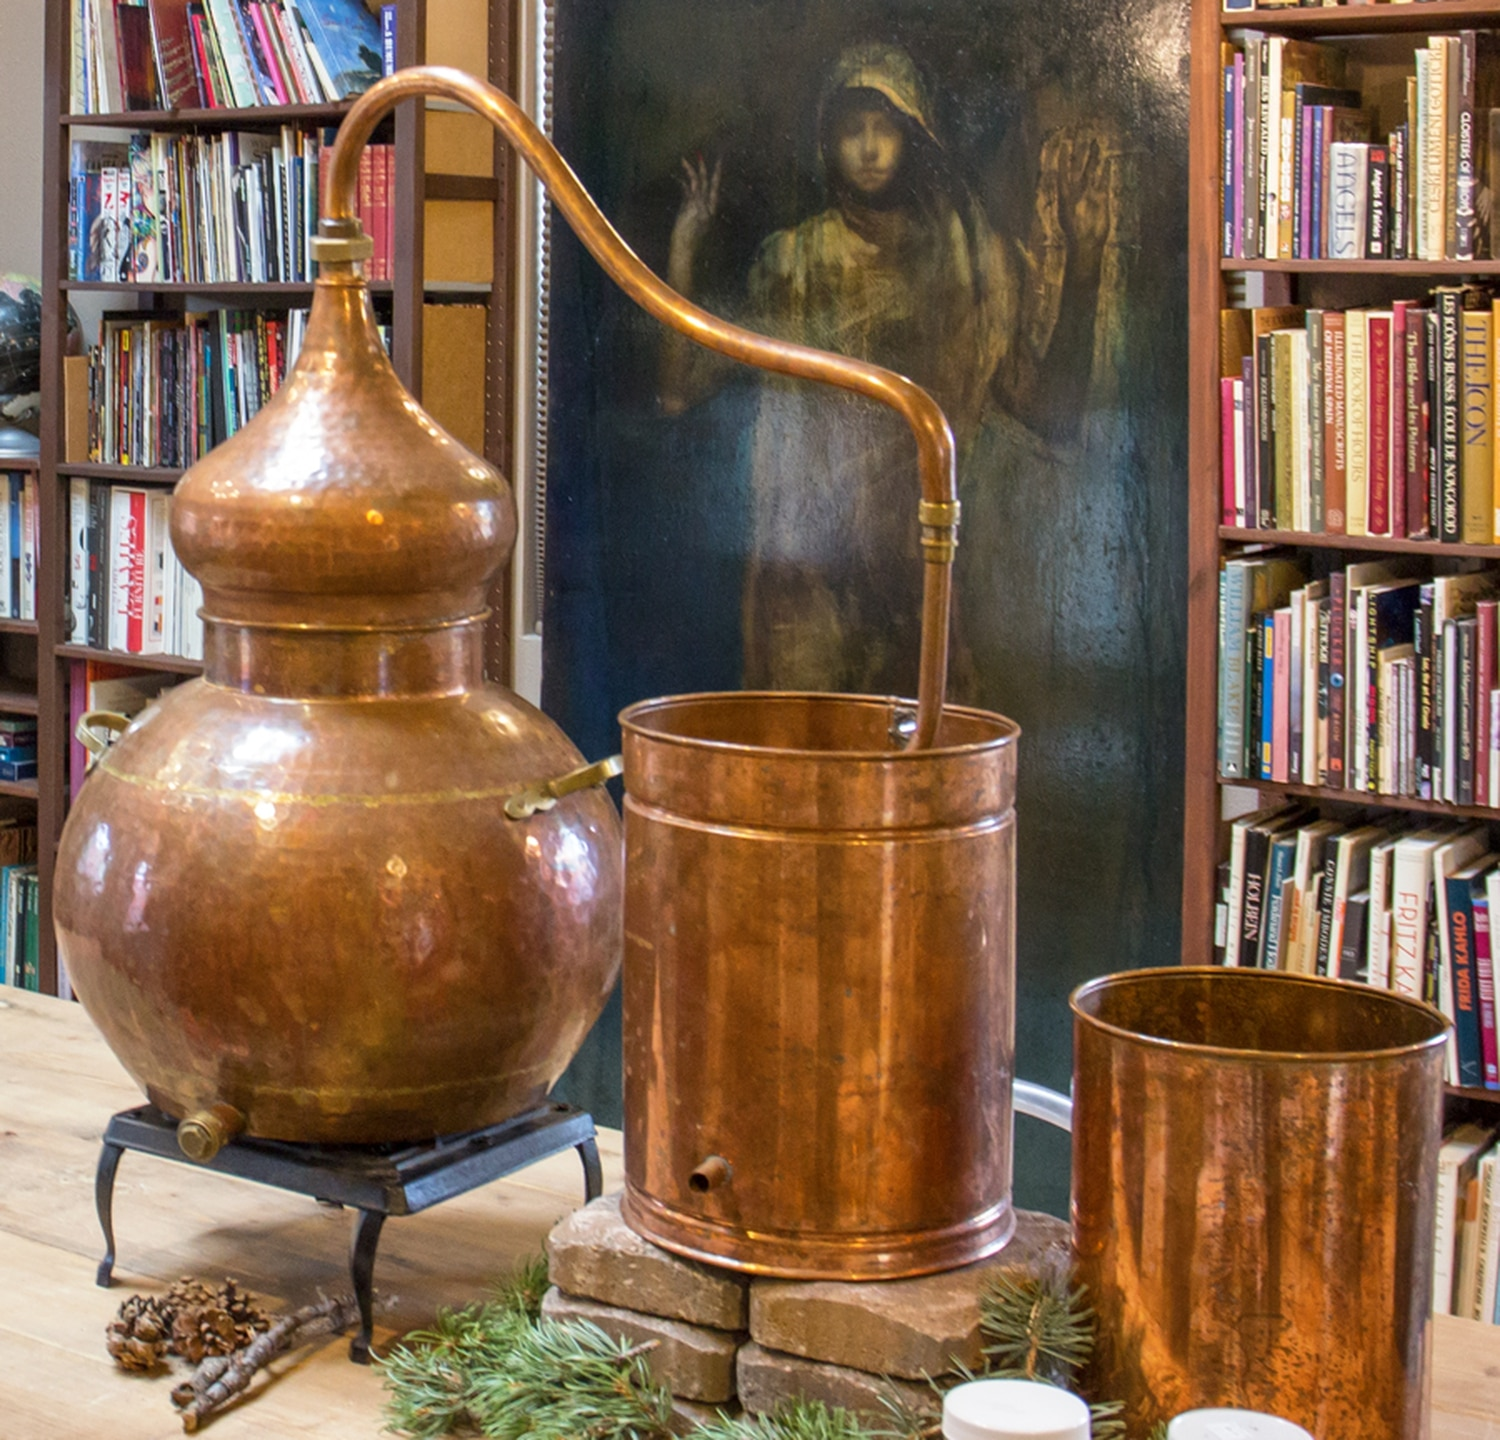 Villa recently distilled local piñon pine resin using this copper still.